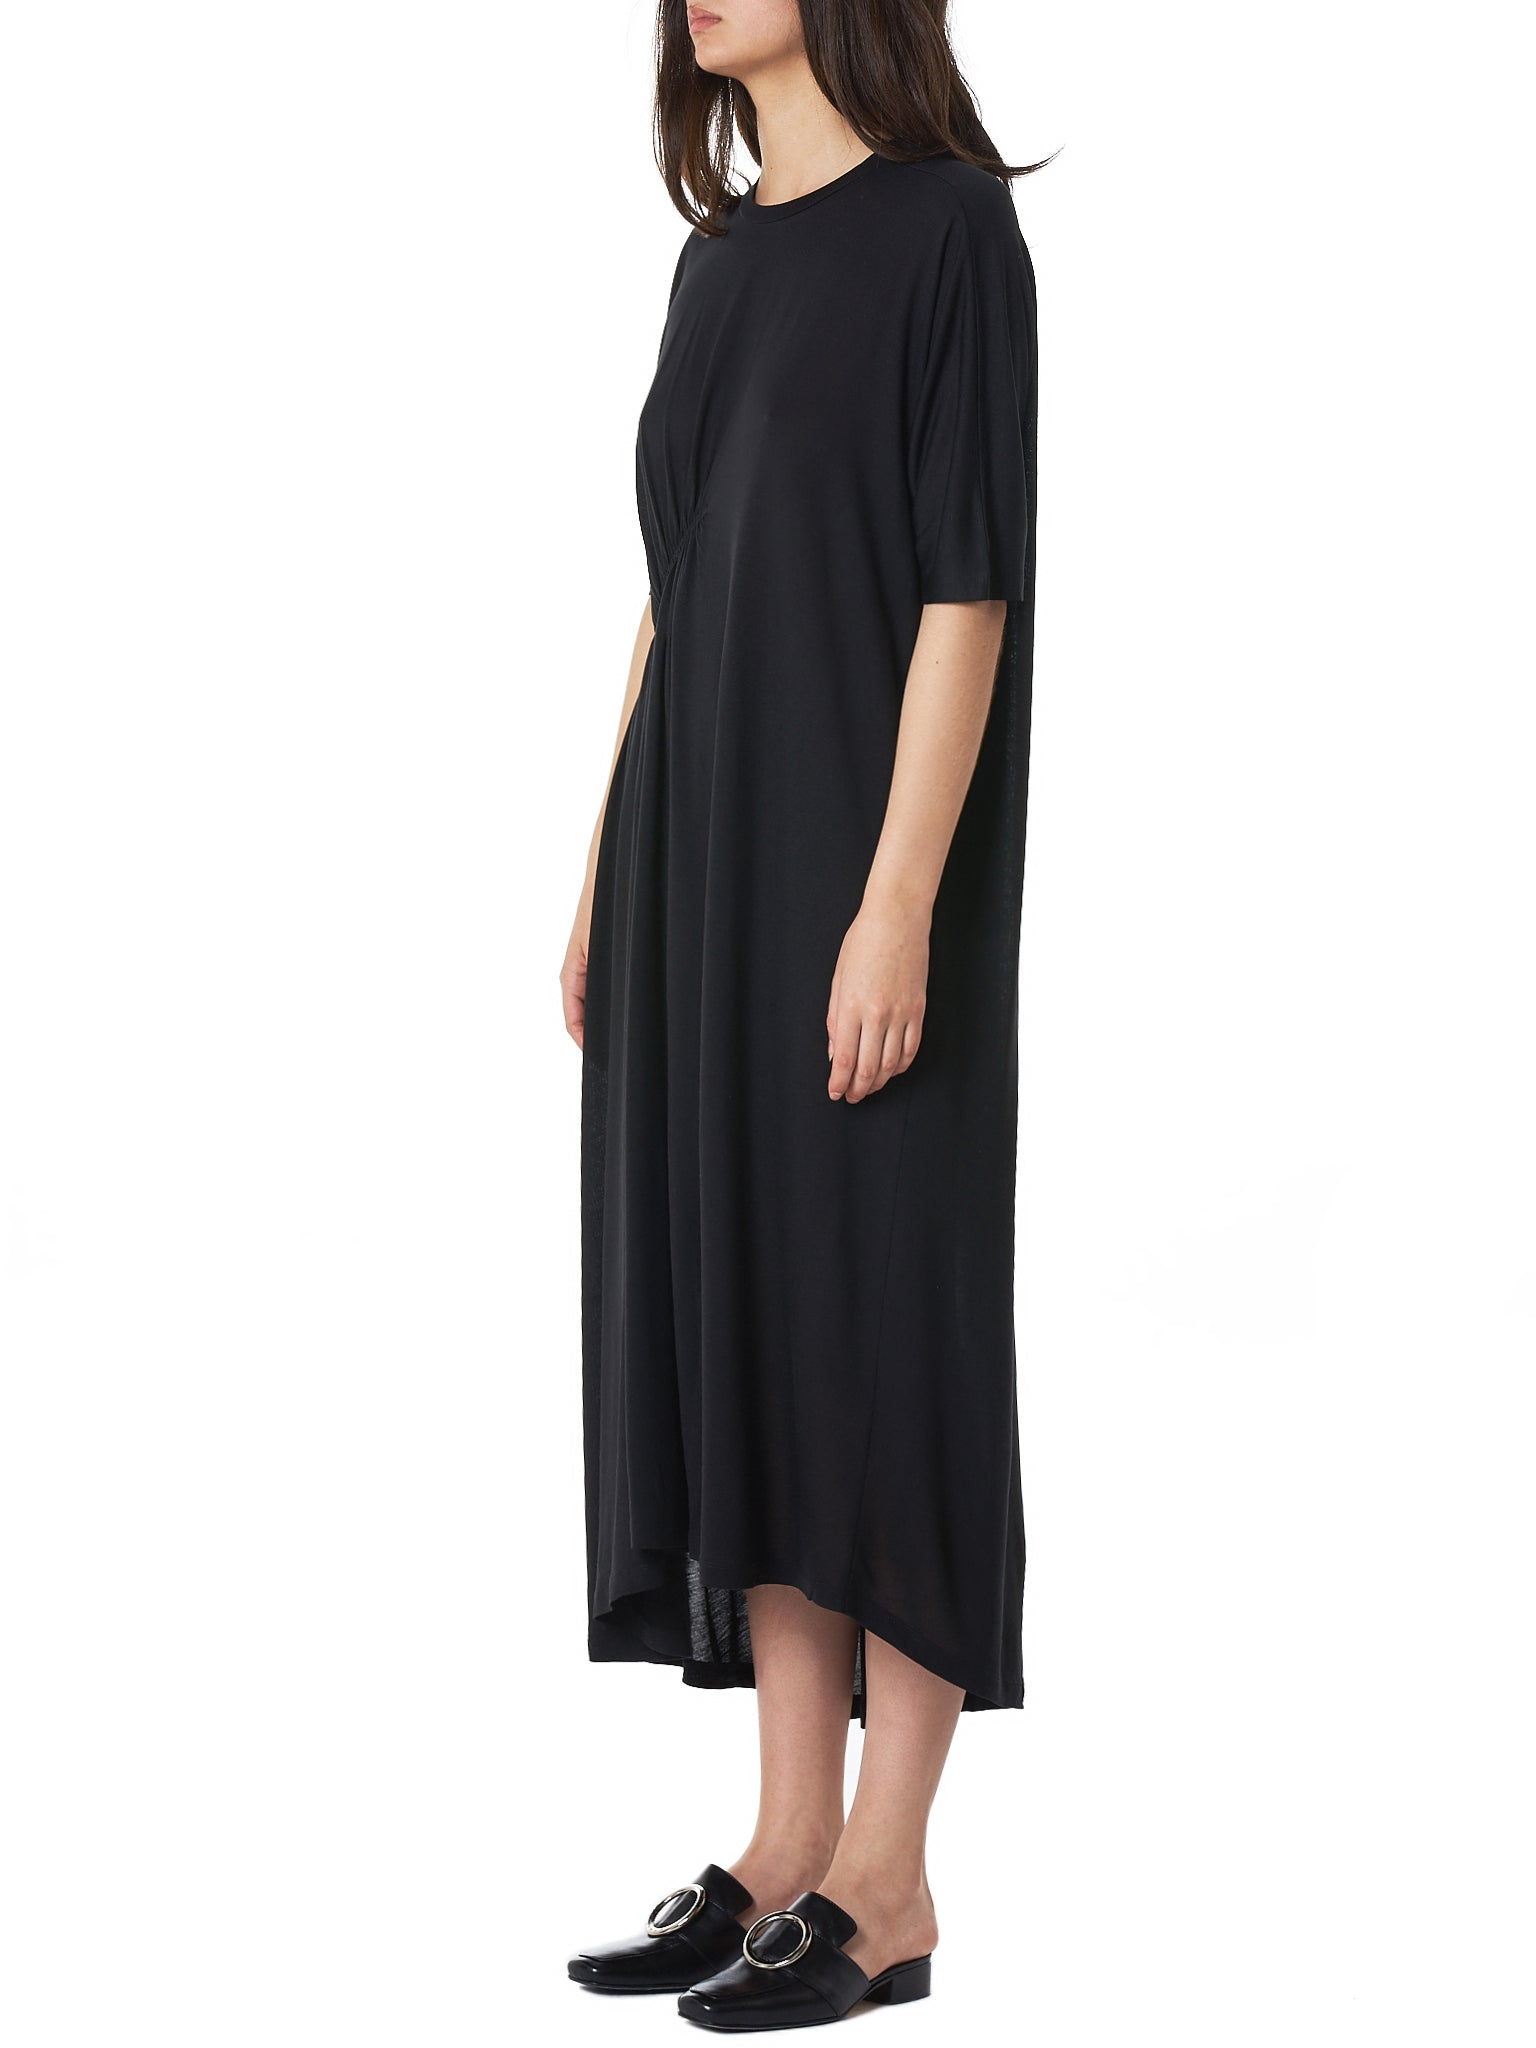 Henrik Vibskov Dress - Hlorenzo Side